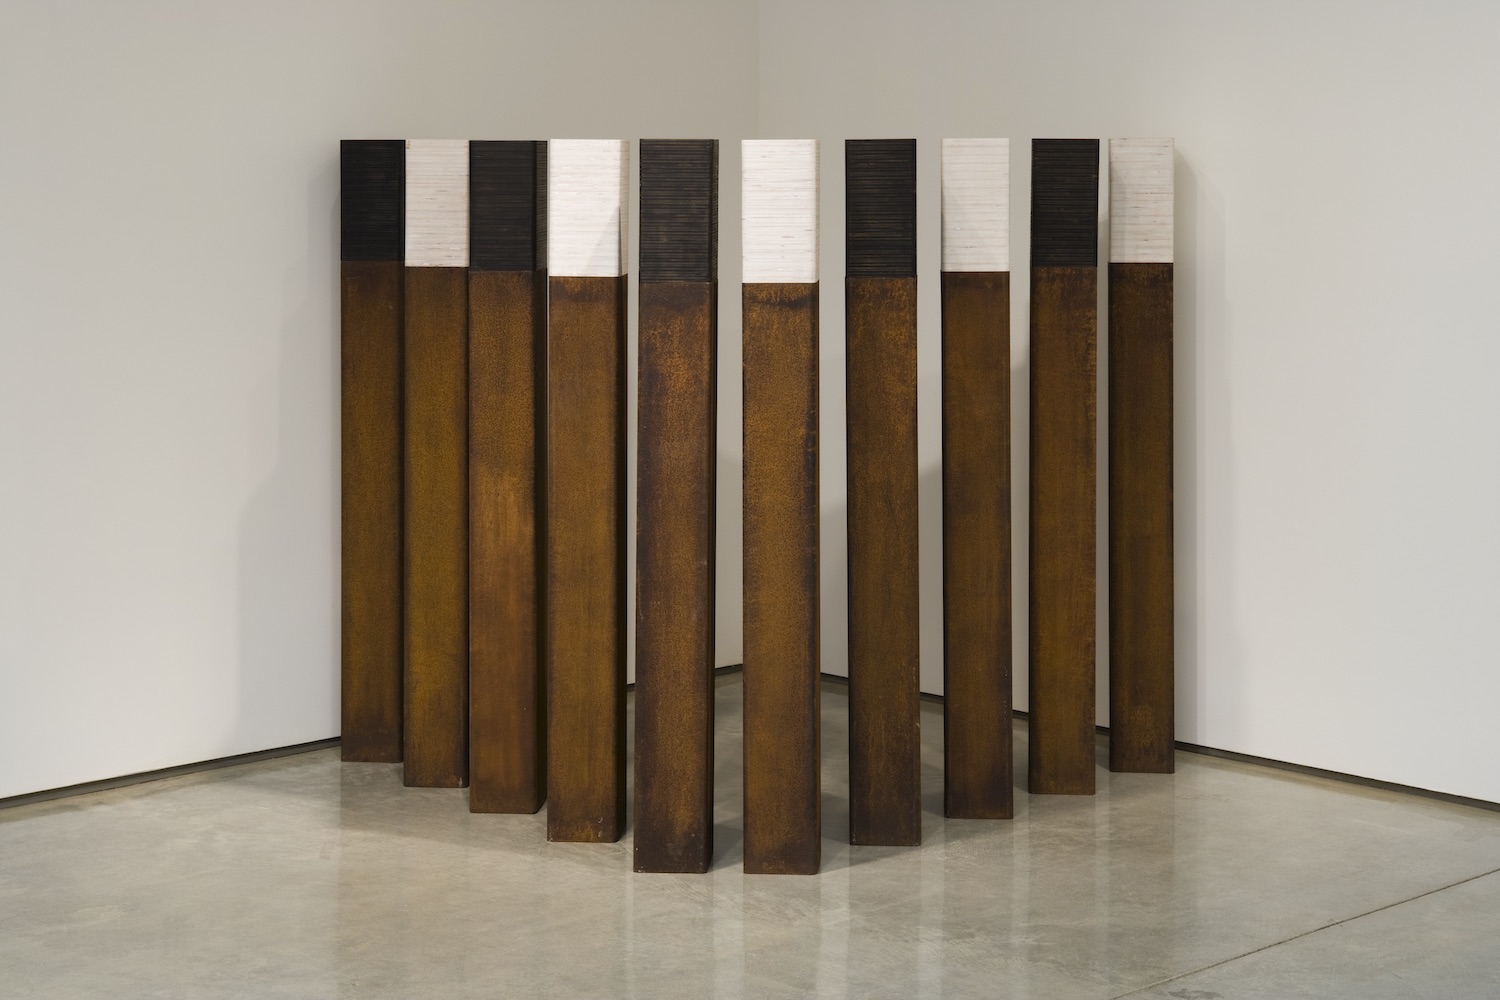 Susan Abbott Martin, Long Division at Roll Up Project